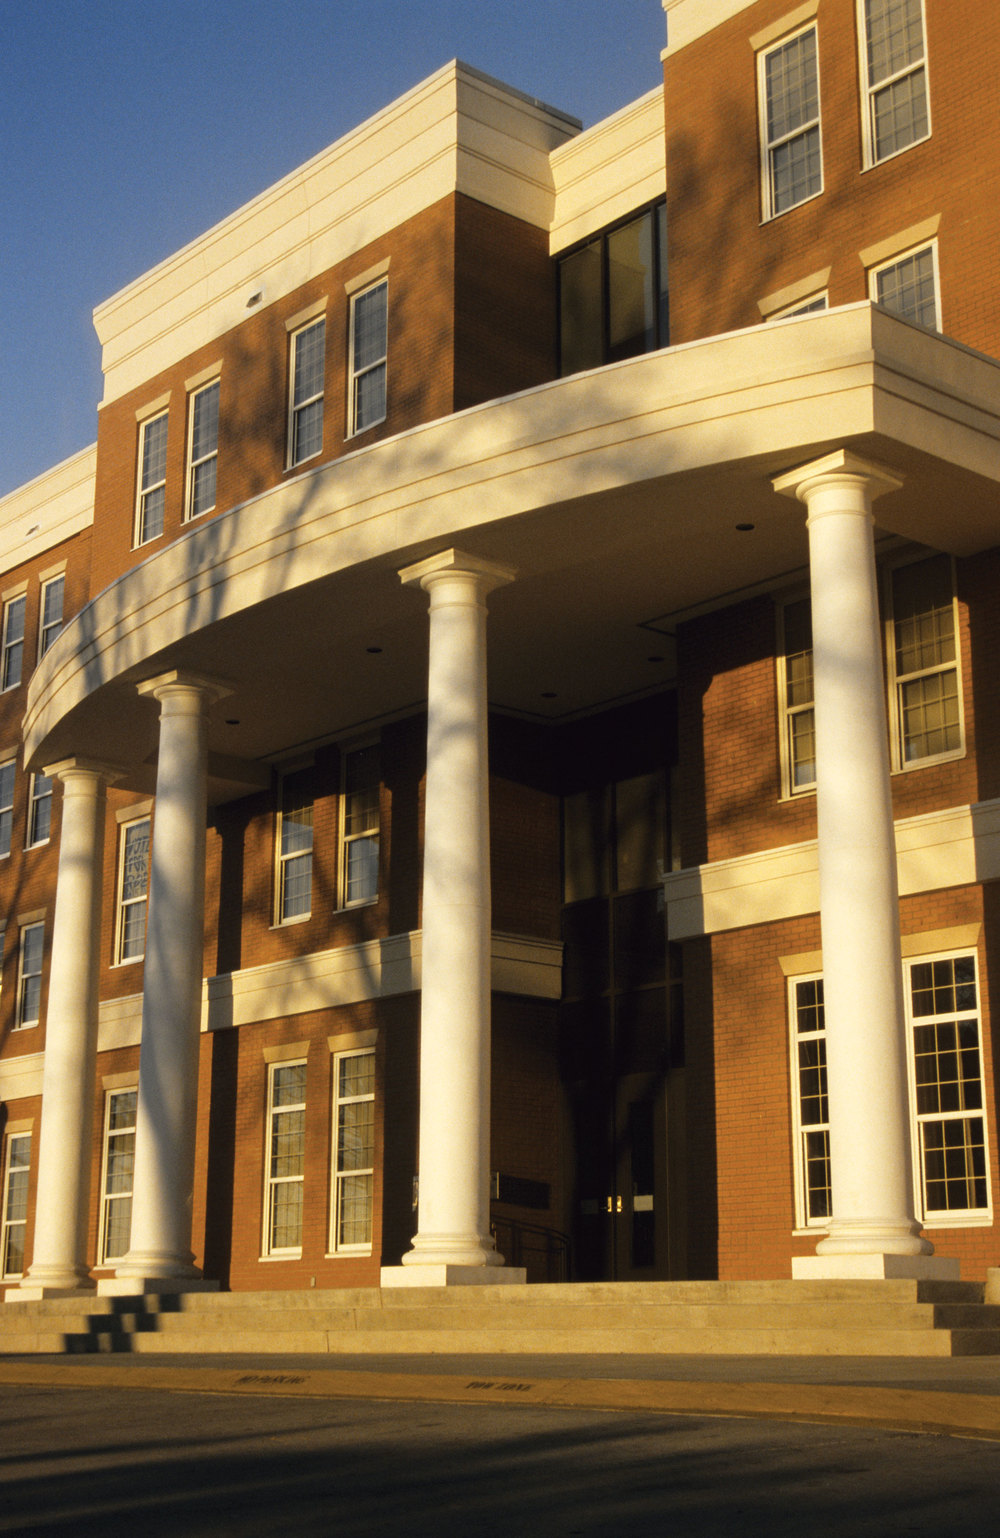 The University Of Southern Mississippi >> Oseola McCarty Residence Hall, University of Southern Mississippi | JBHM Architecture